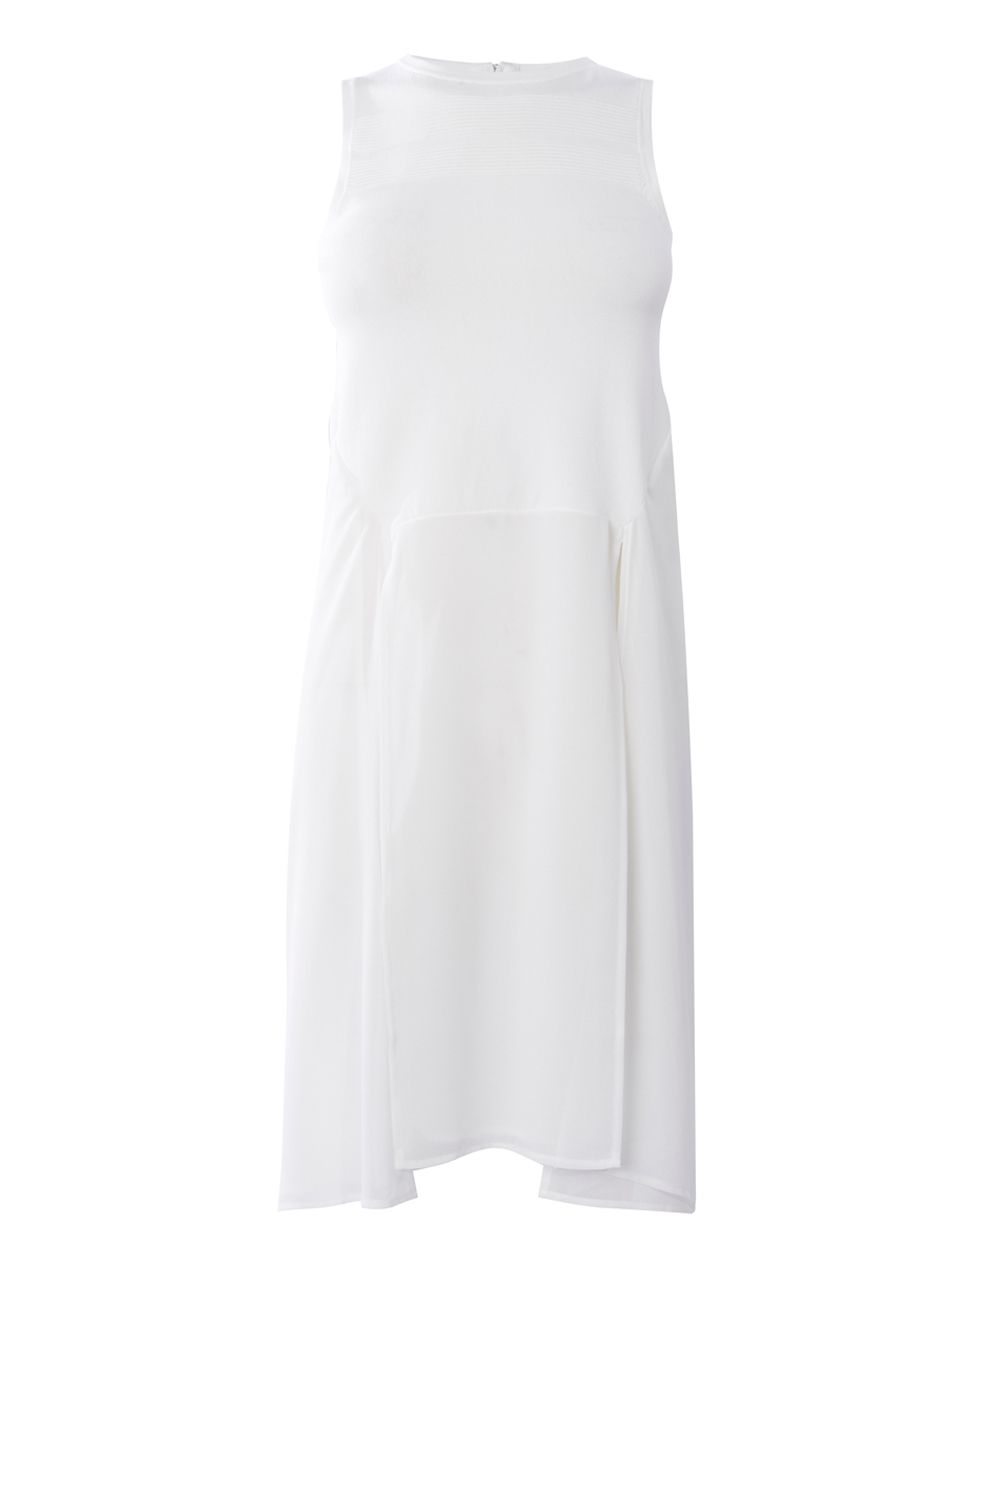 Coast Kylie Longline Knit, White